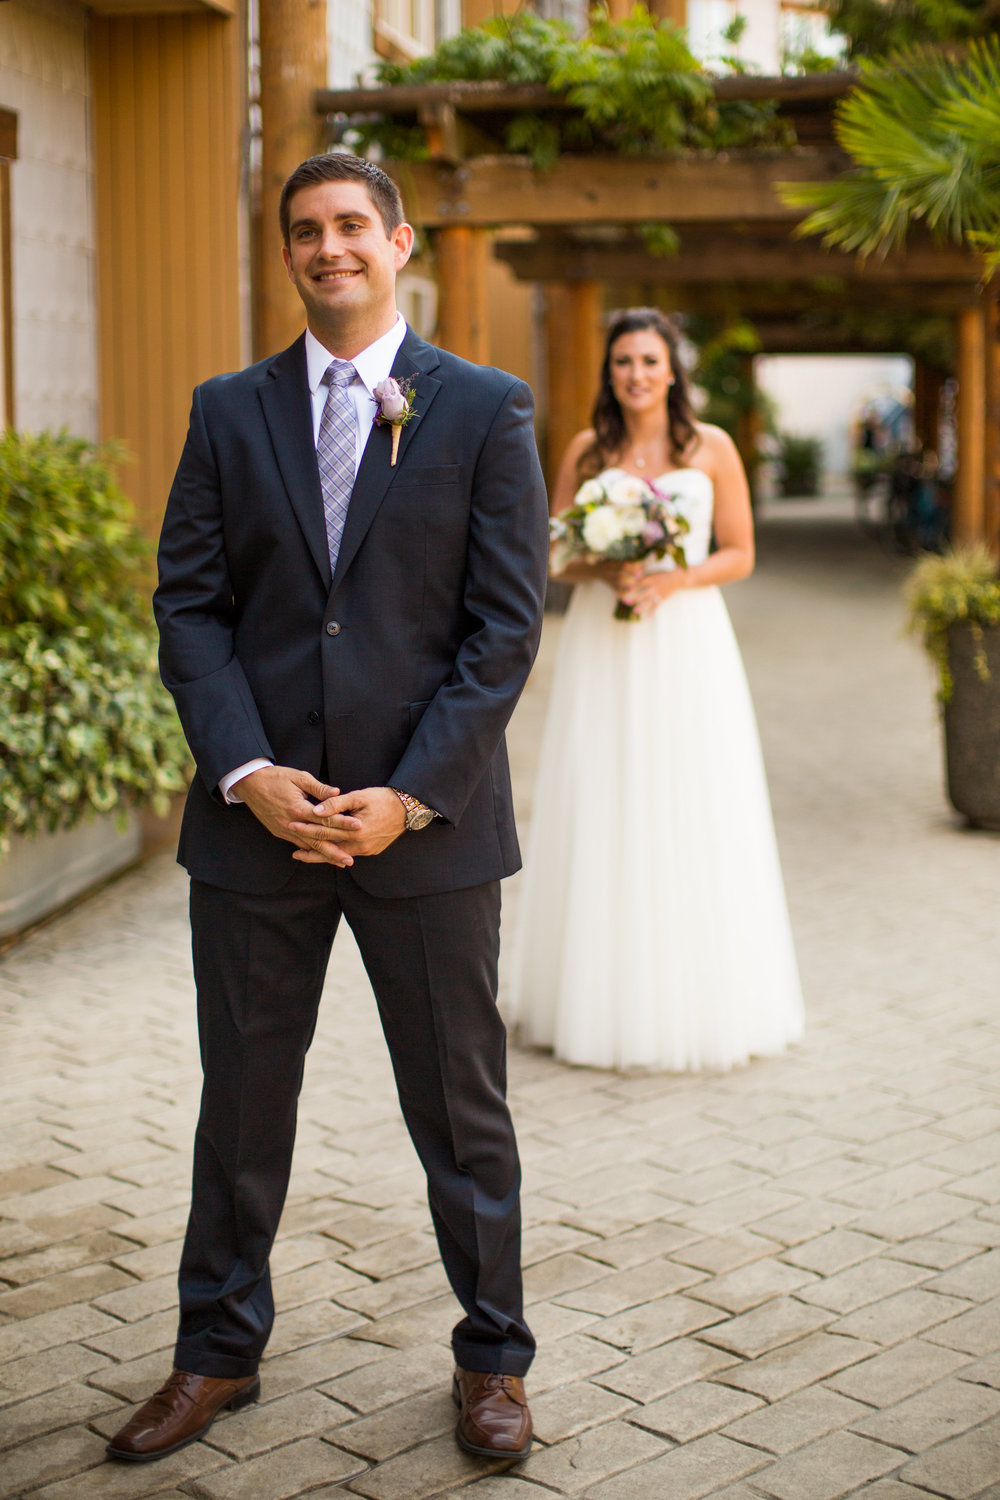 Seattle Wedding Planner, Wedding Wise | Ciccarelli Photography | Edgewater Hotel Wedding | Bride and groom first look